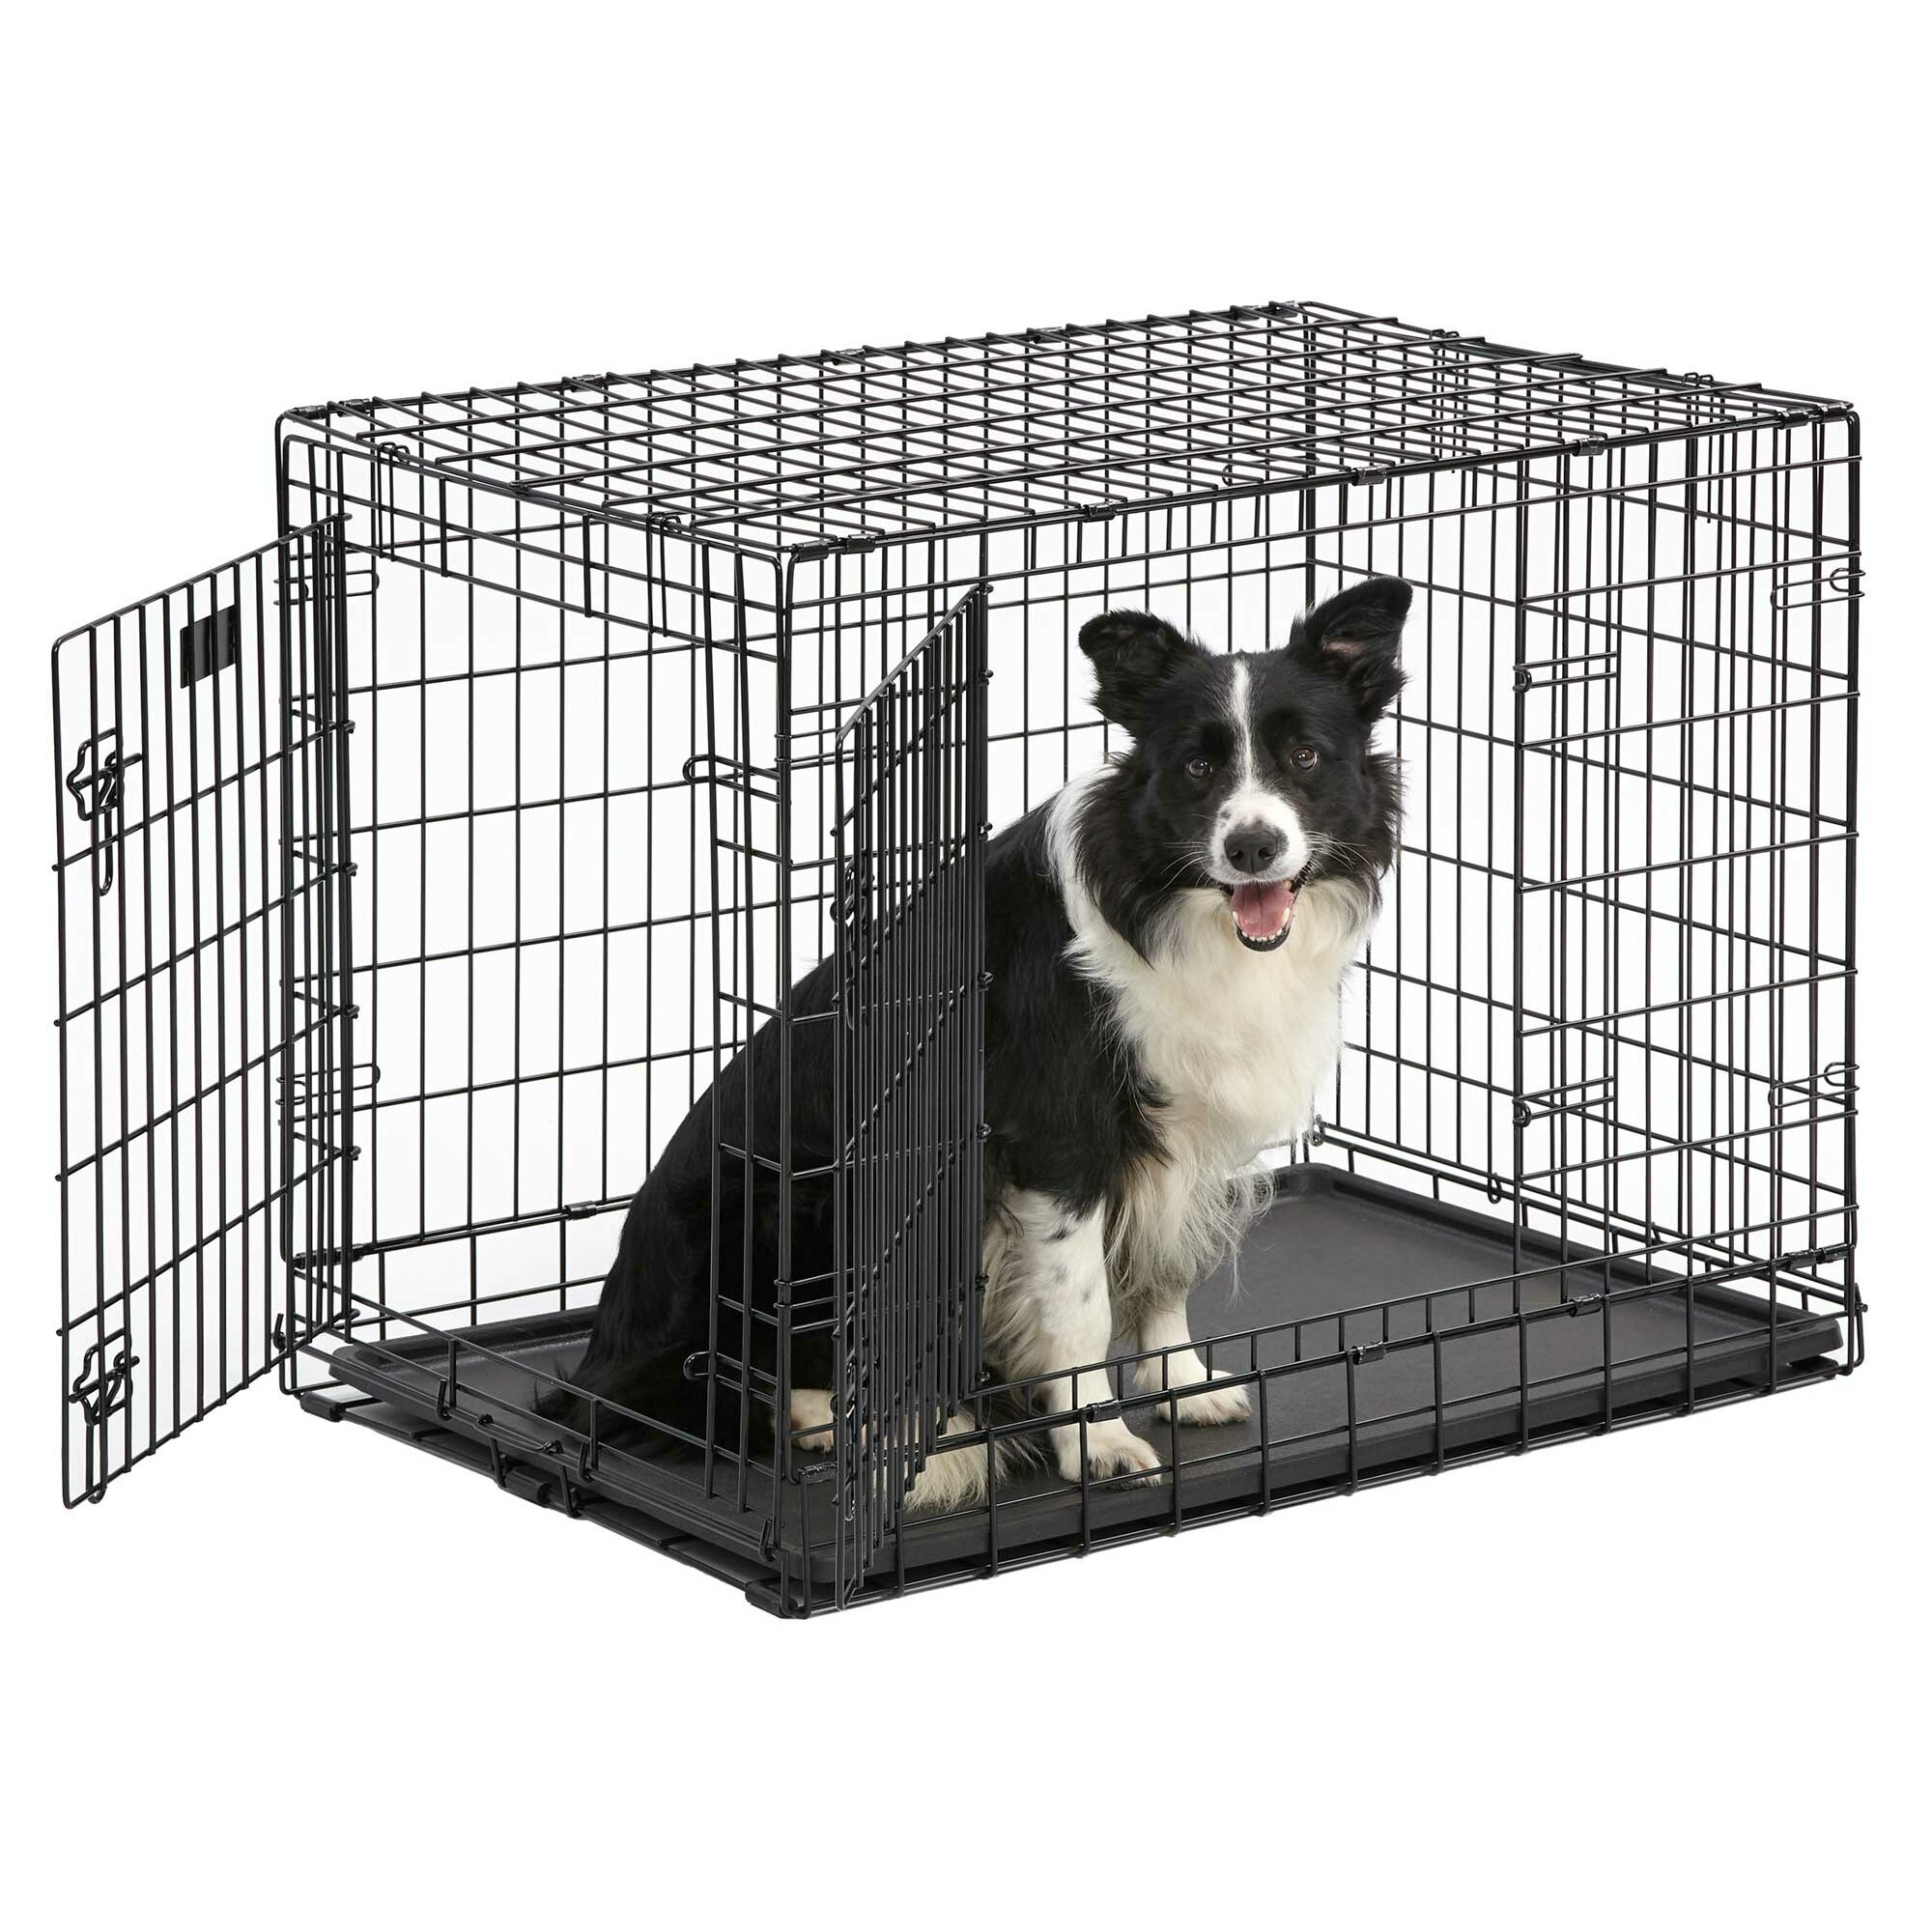 Midwest Homes For Pets Ultima Pro Fold and Carry Double  : Midwest Homes For Pets Ultima Pro Fold and Carry Triple Door Pet Crate 7XXUP from www.wayfair.com size 2000 x 2000 jpeg 613kB